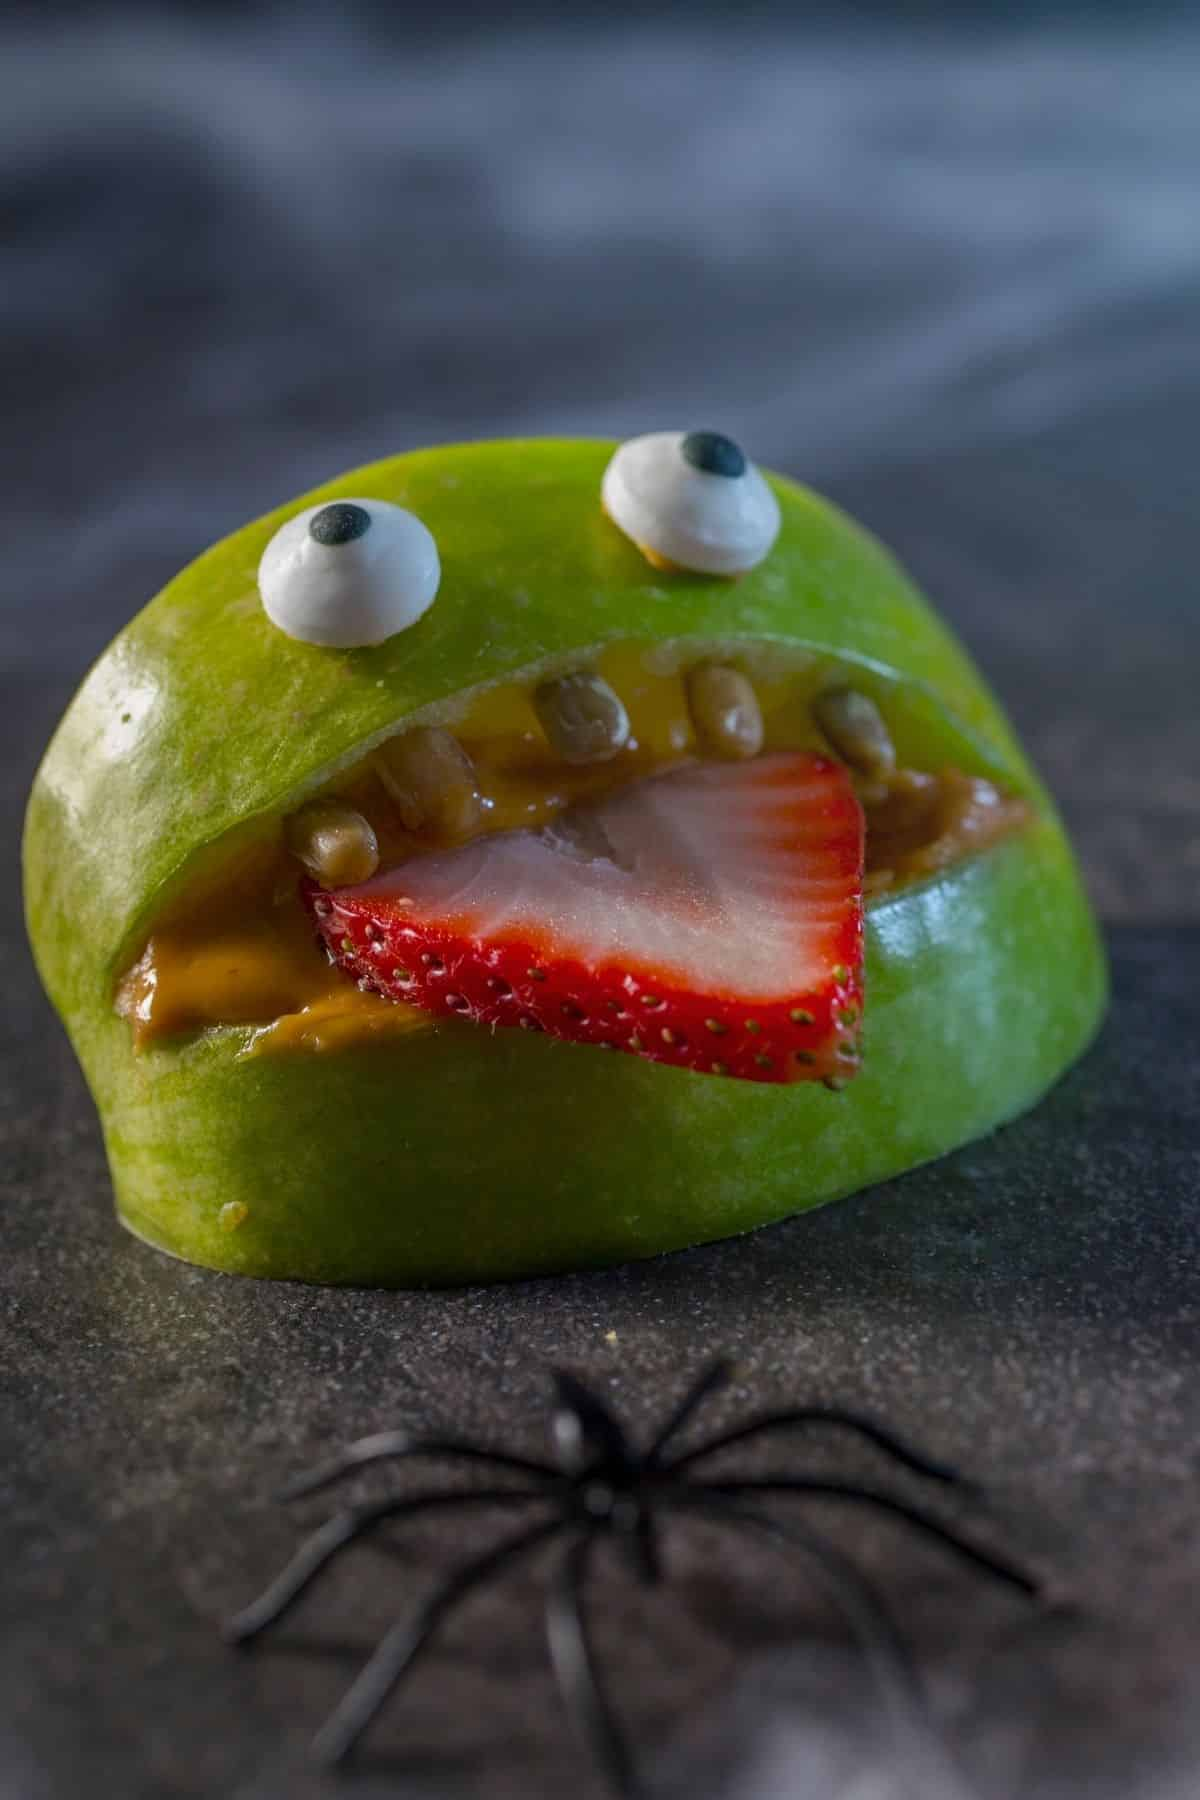 funny face made using an apple and strawberry